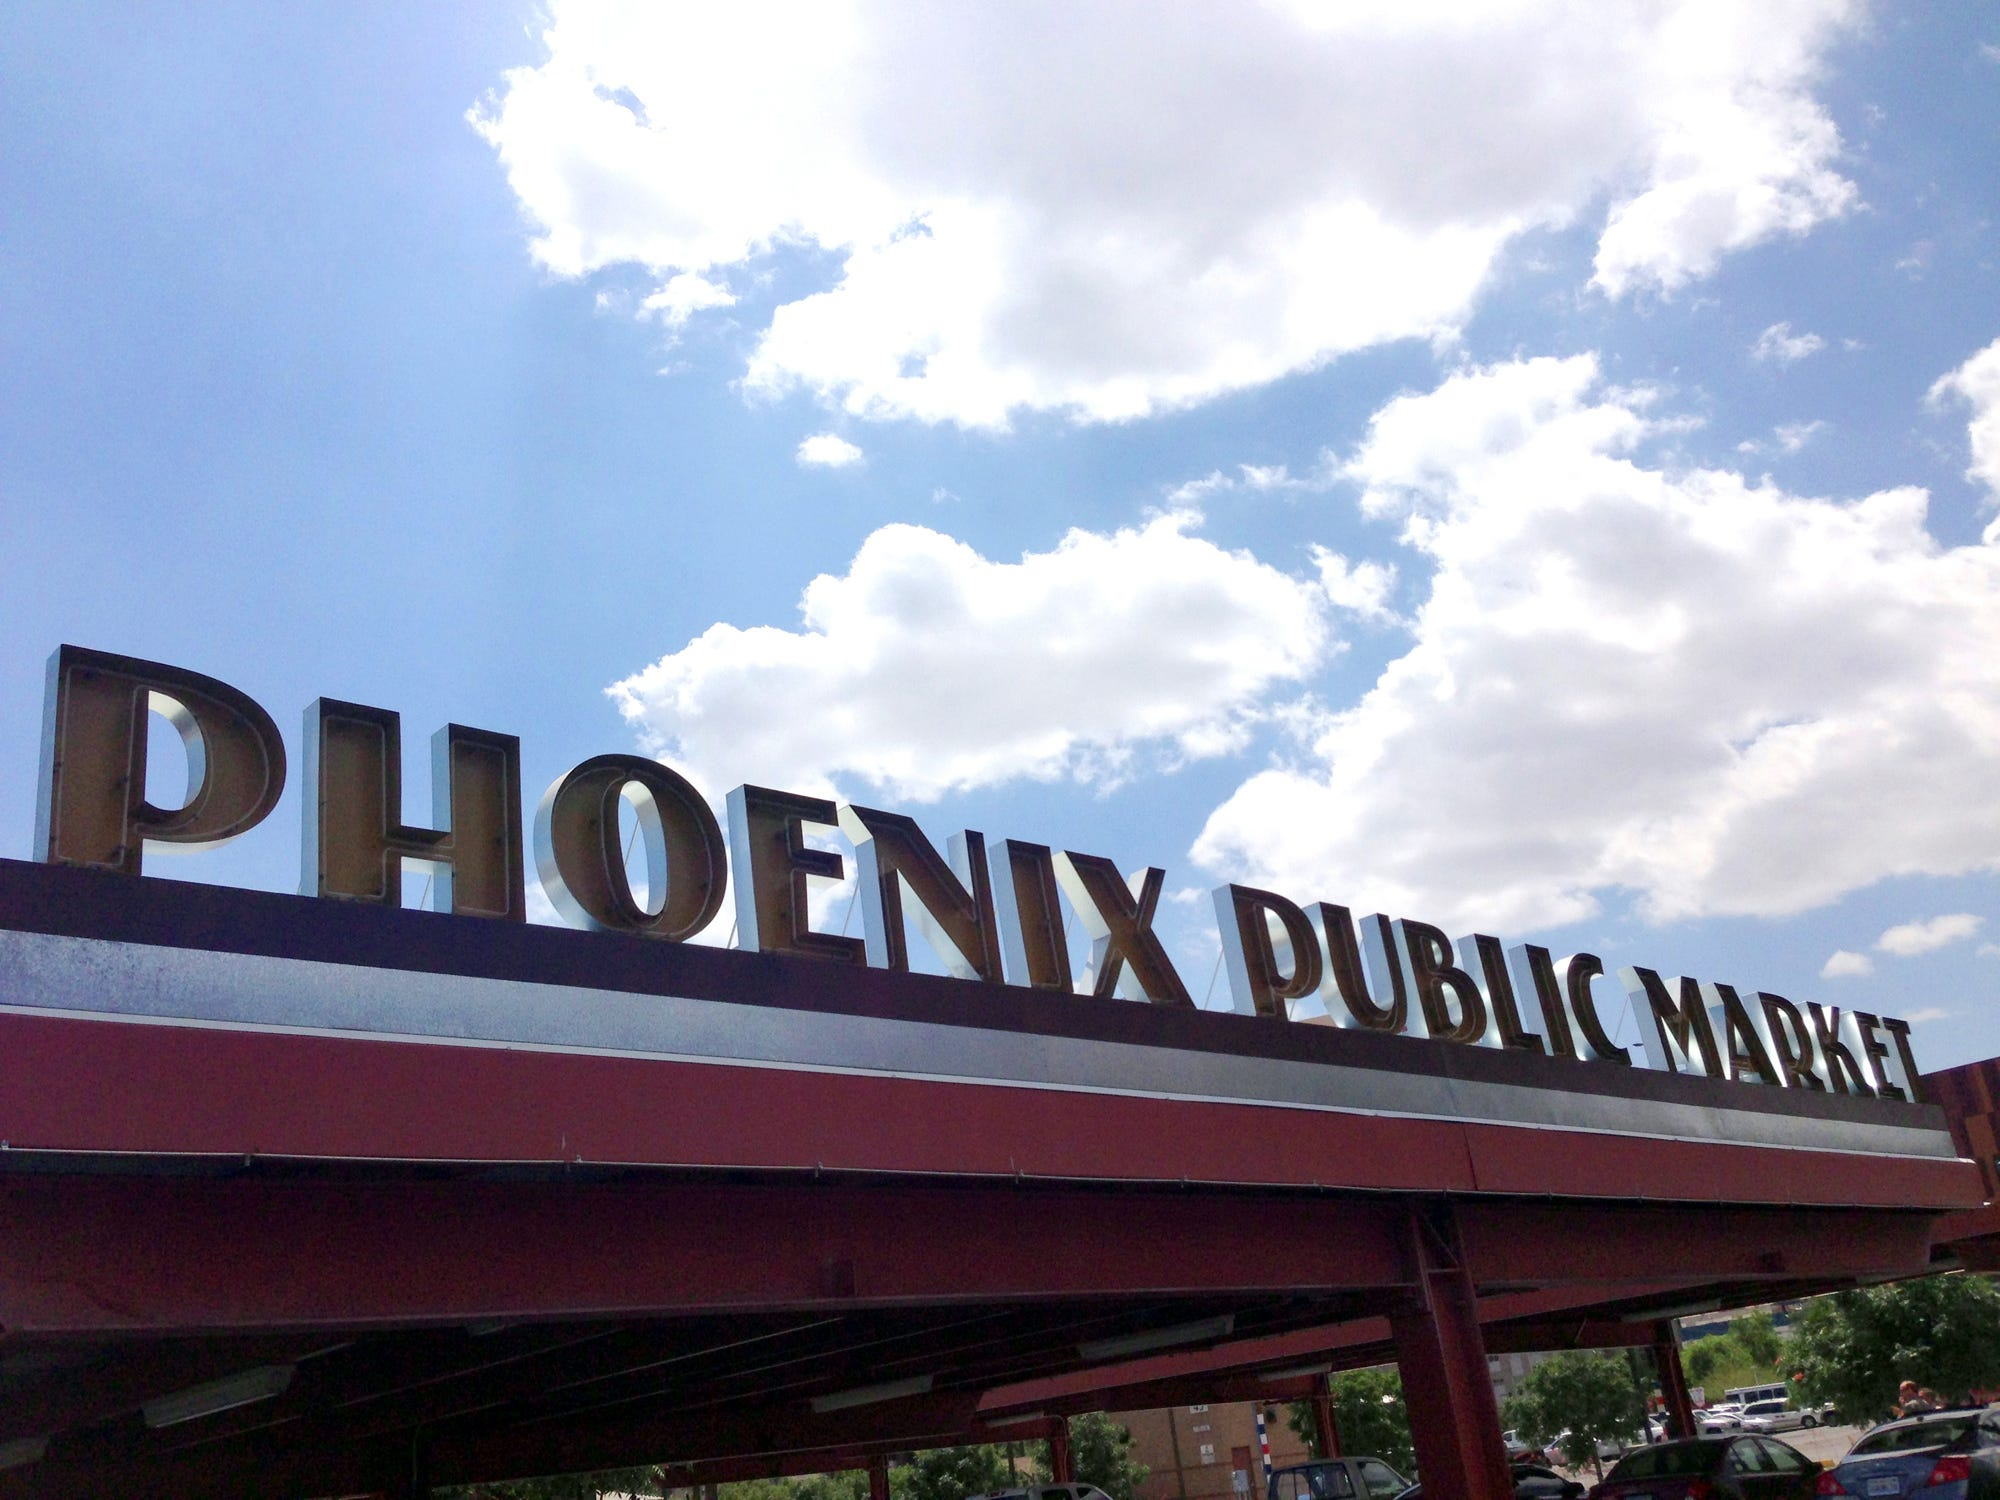 azcentral.com - Shaena Montanari, The Arizona Republic - Phoenix Public Market Cafe is closed for good downtown. Here's everything we know